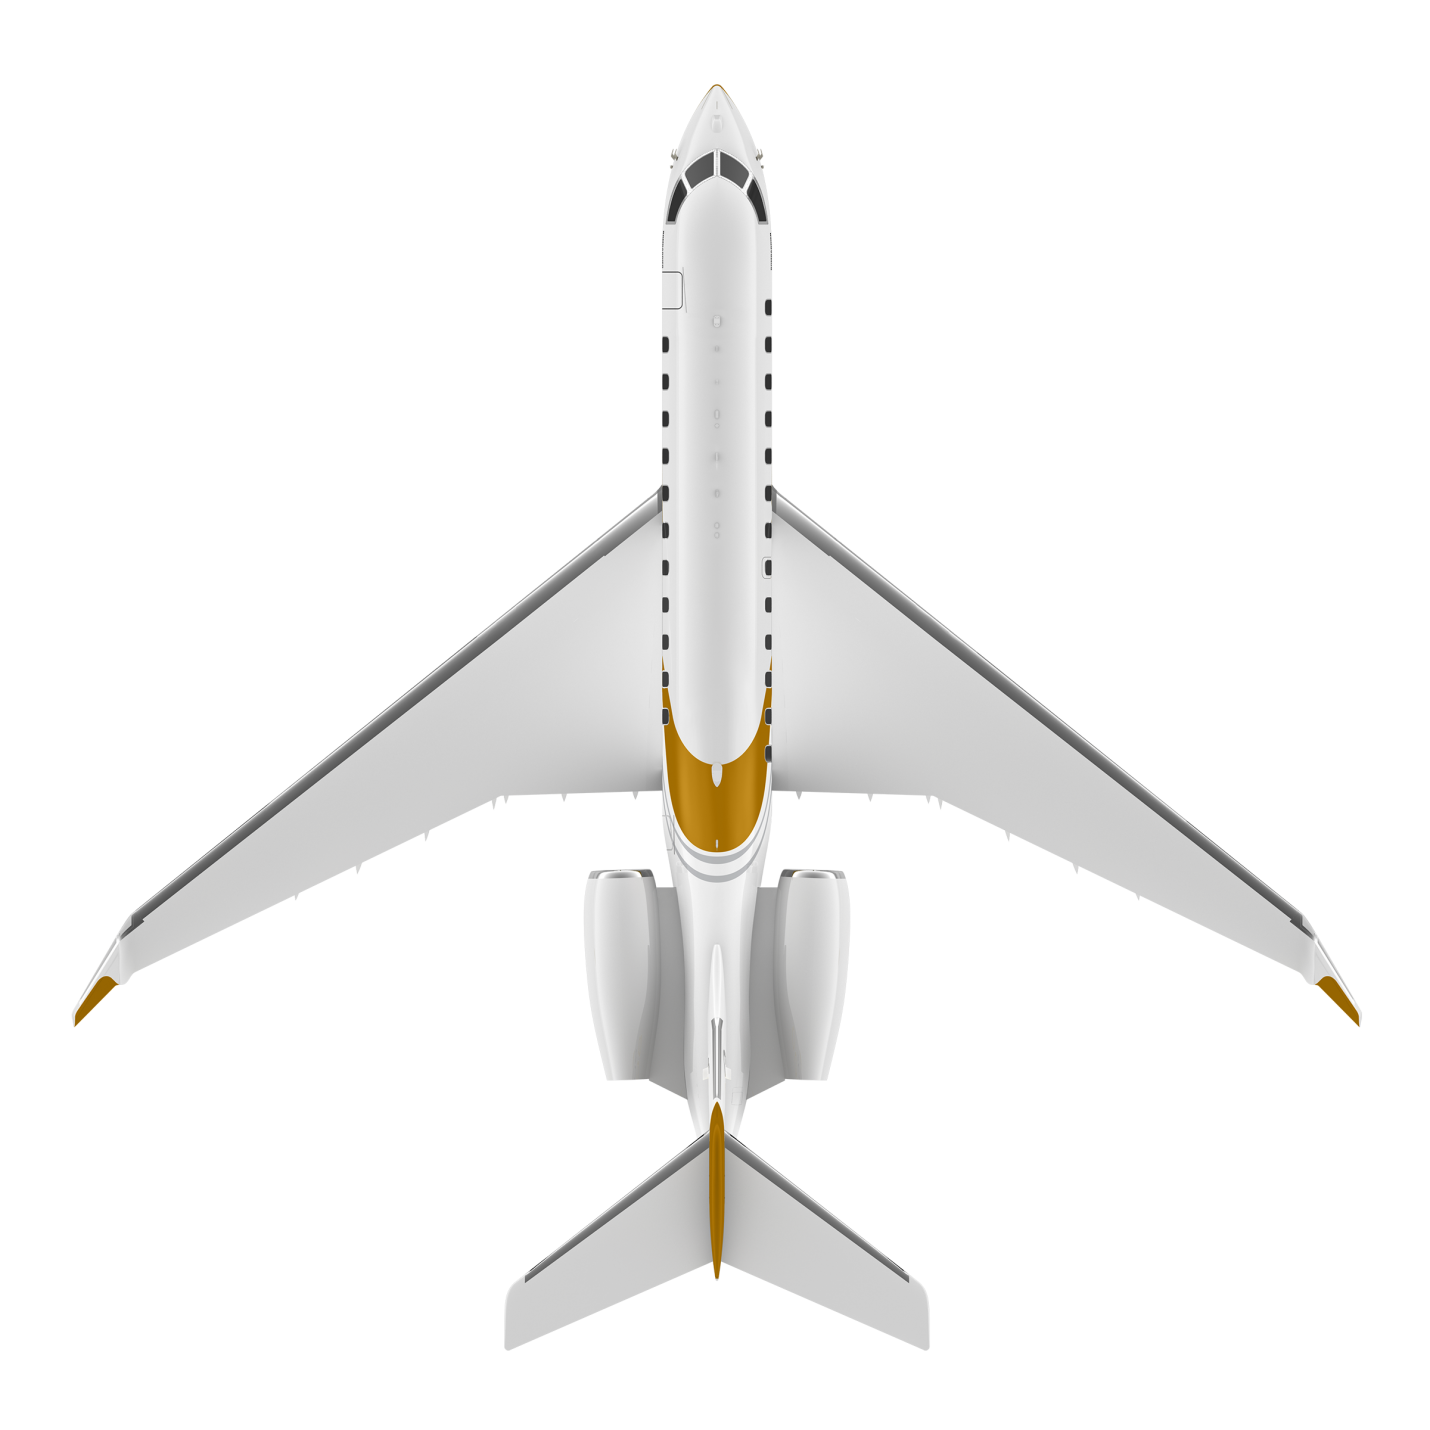 Global 8000 top view